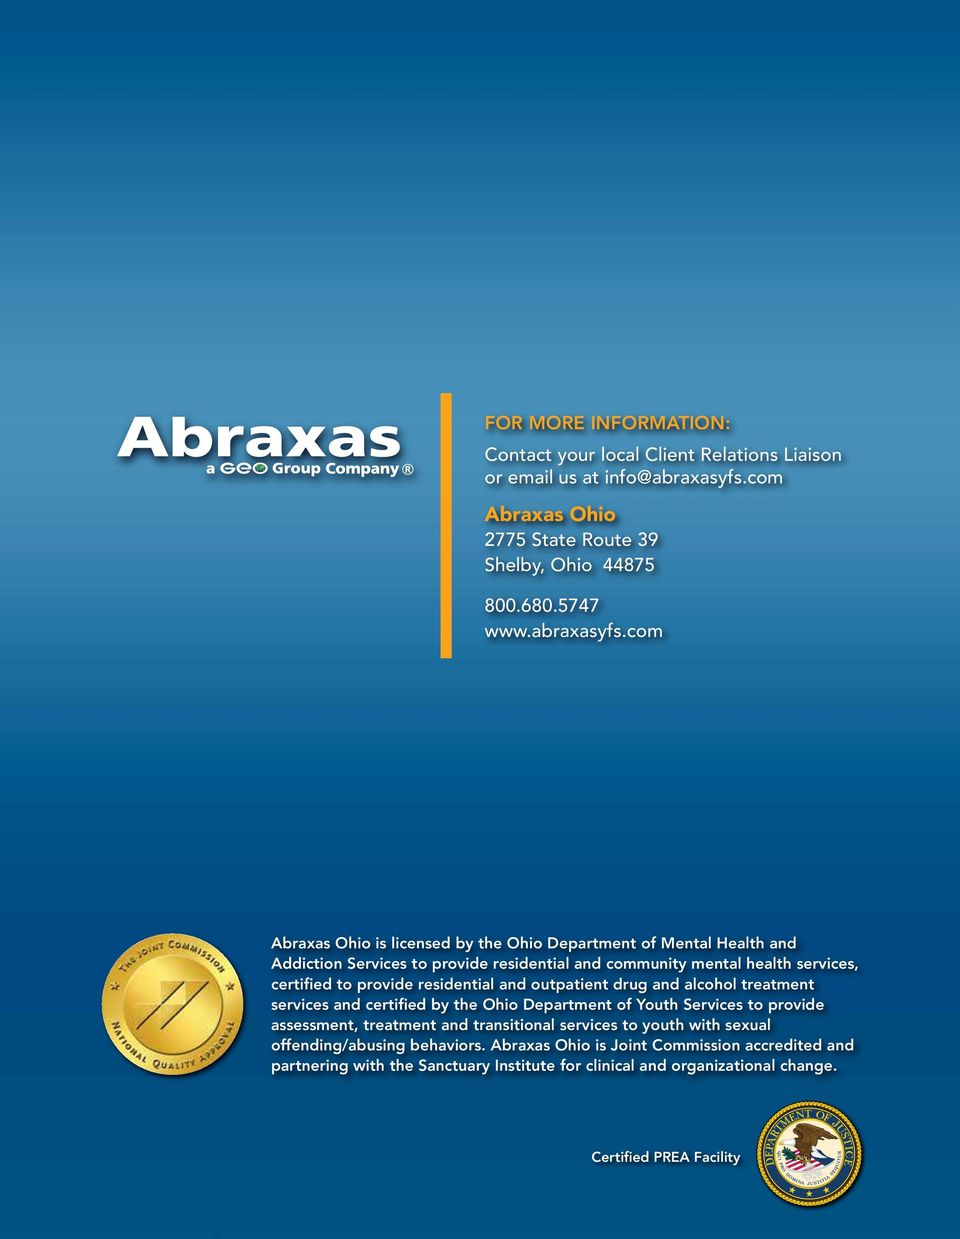 com Abraxas Ohio is licensed by the Ohio Department of Mental Health and Addiction Services to provide residential and community mental health services, certified to provide